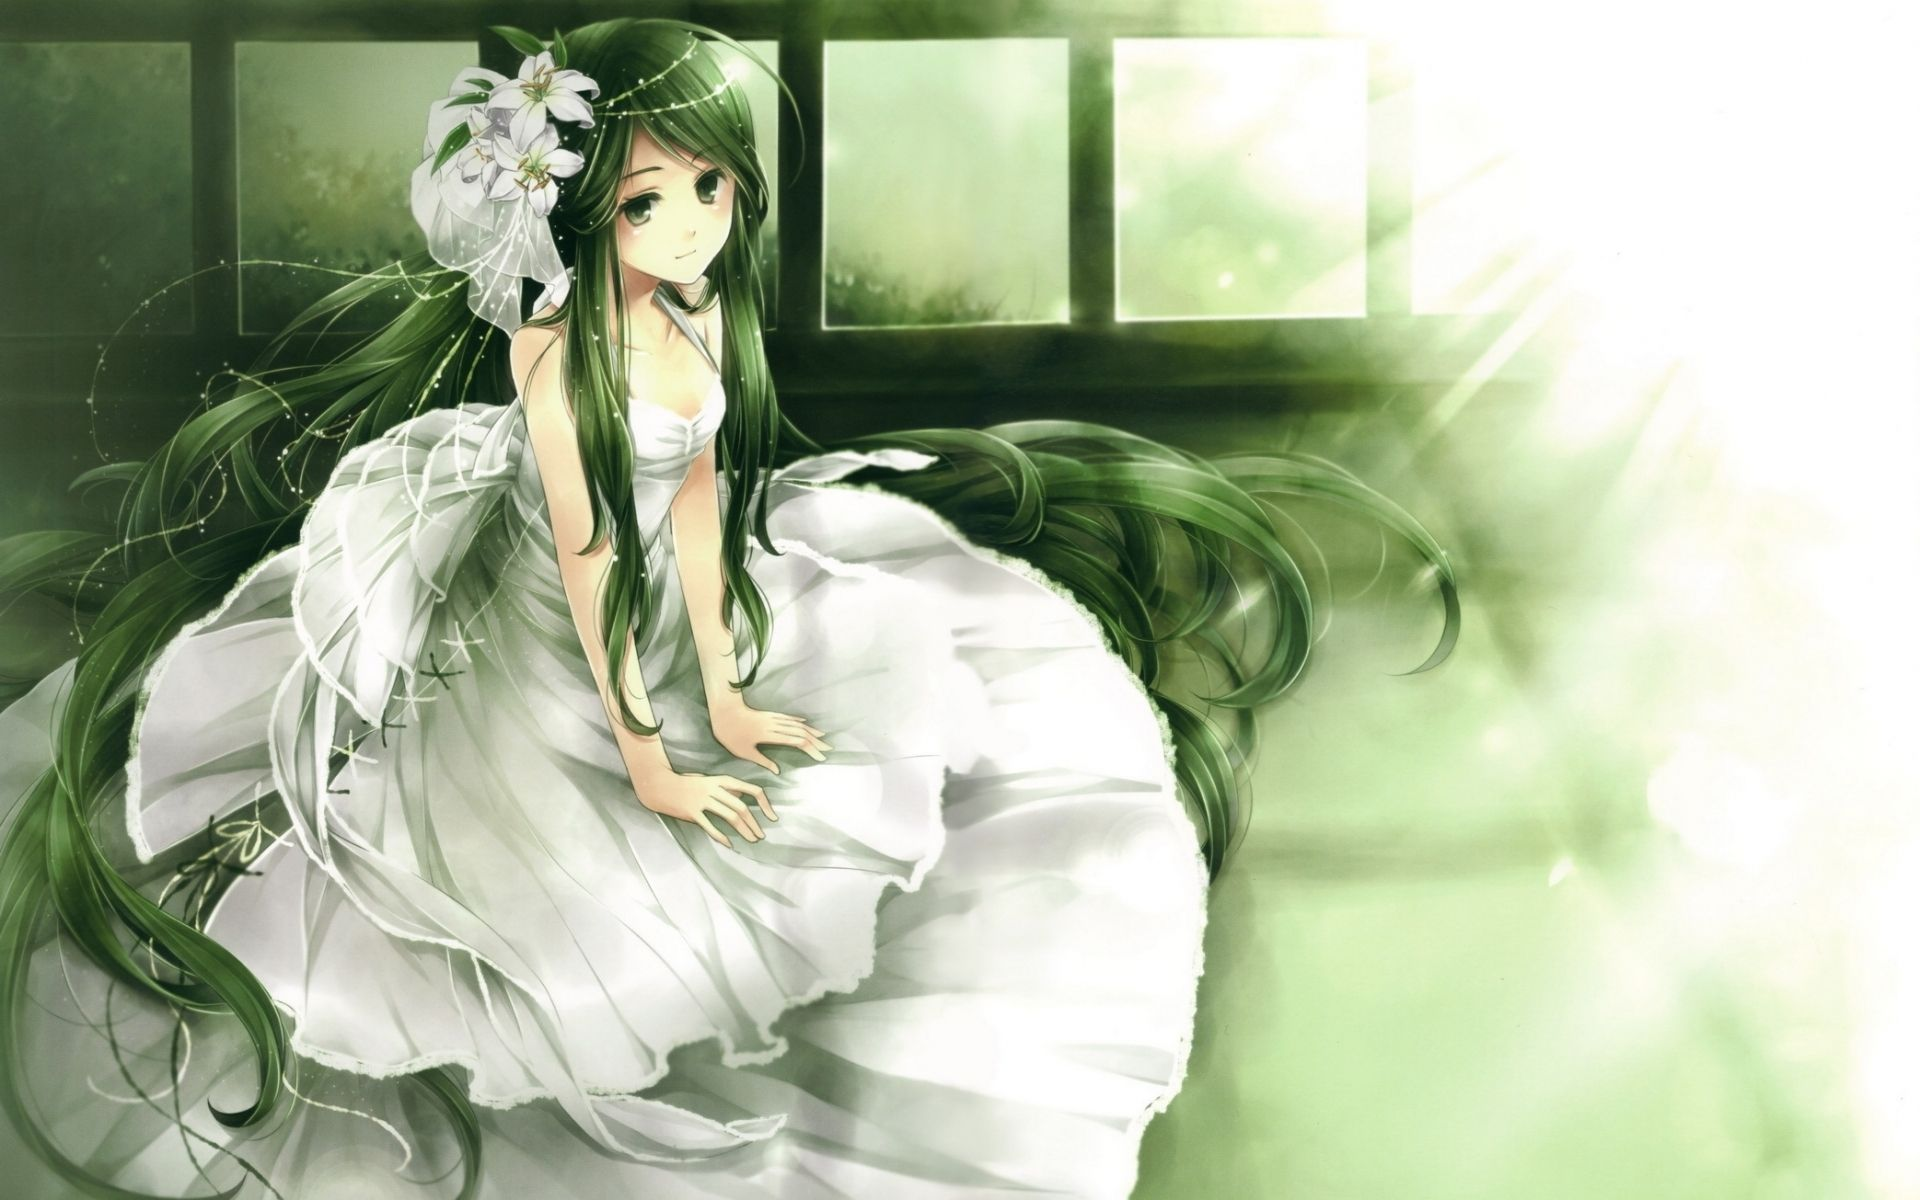 Download Wallpaper 1920x1200 Girl, Cute, Dress, Smile, Decoration 1920x1200 HD Background